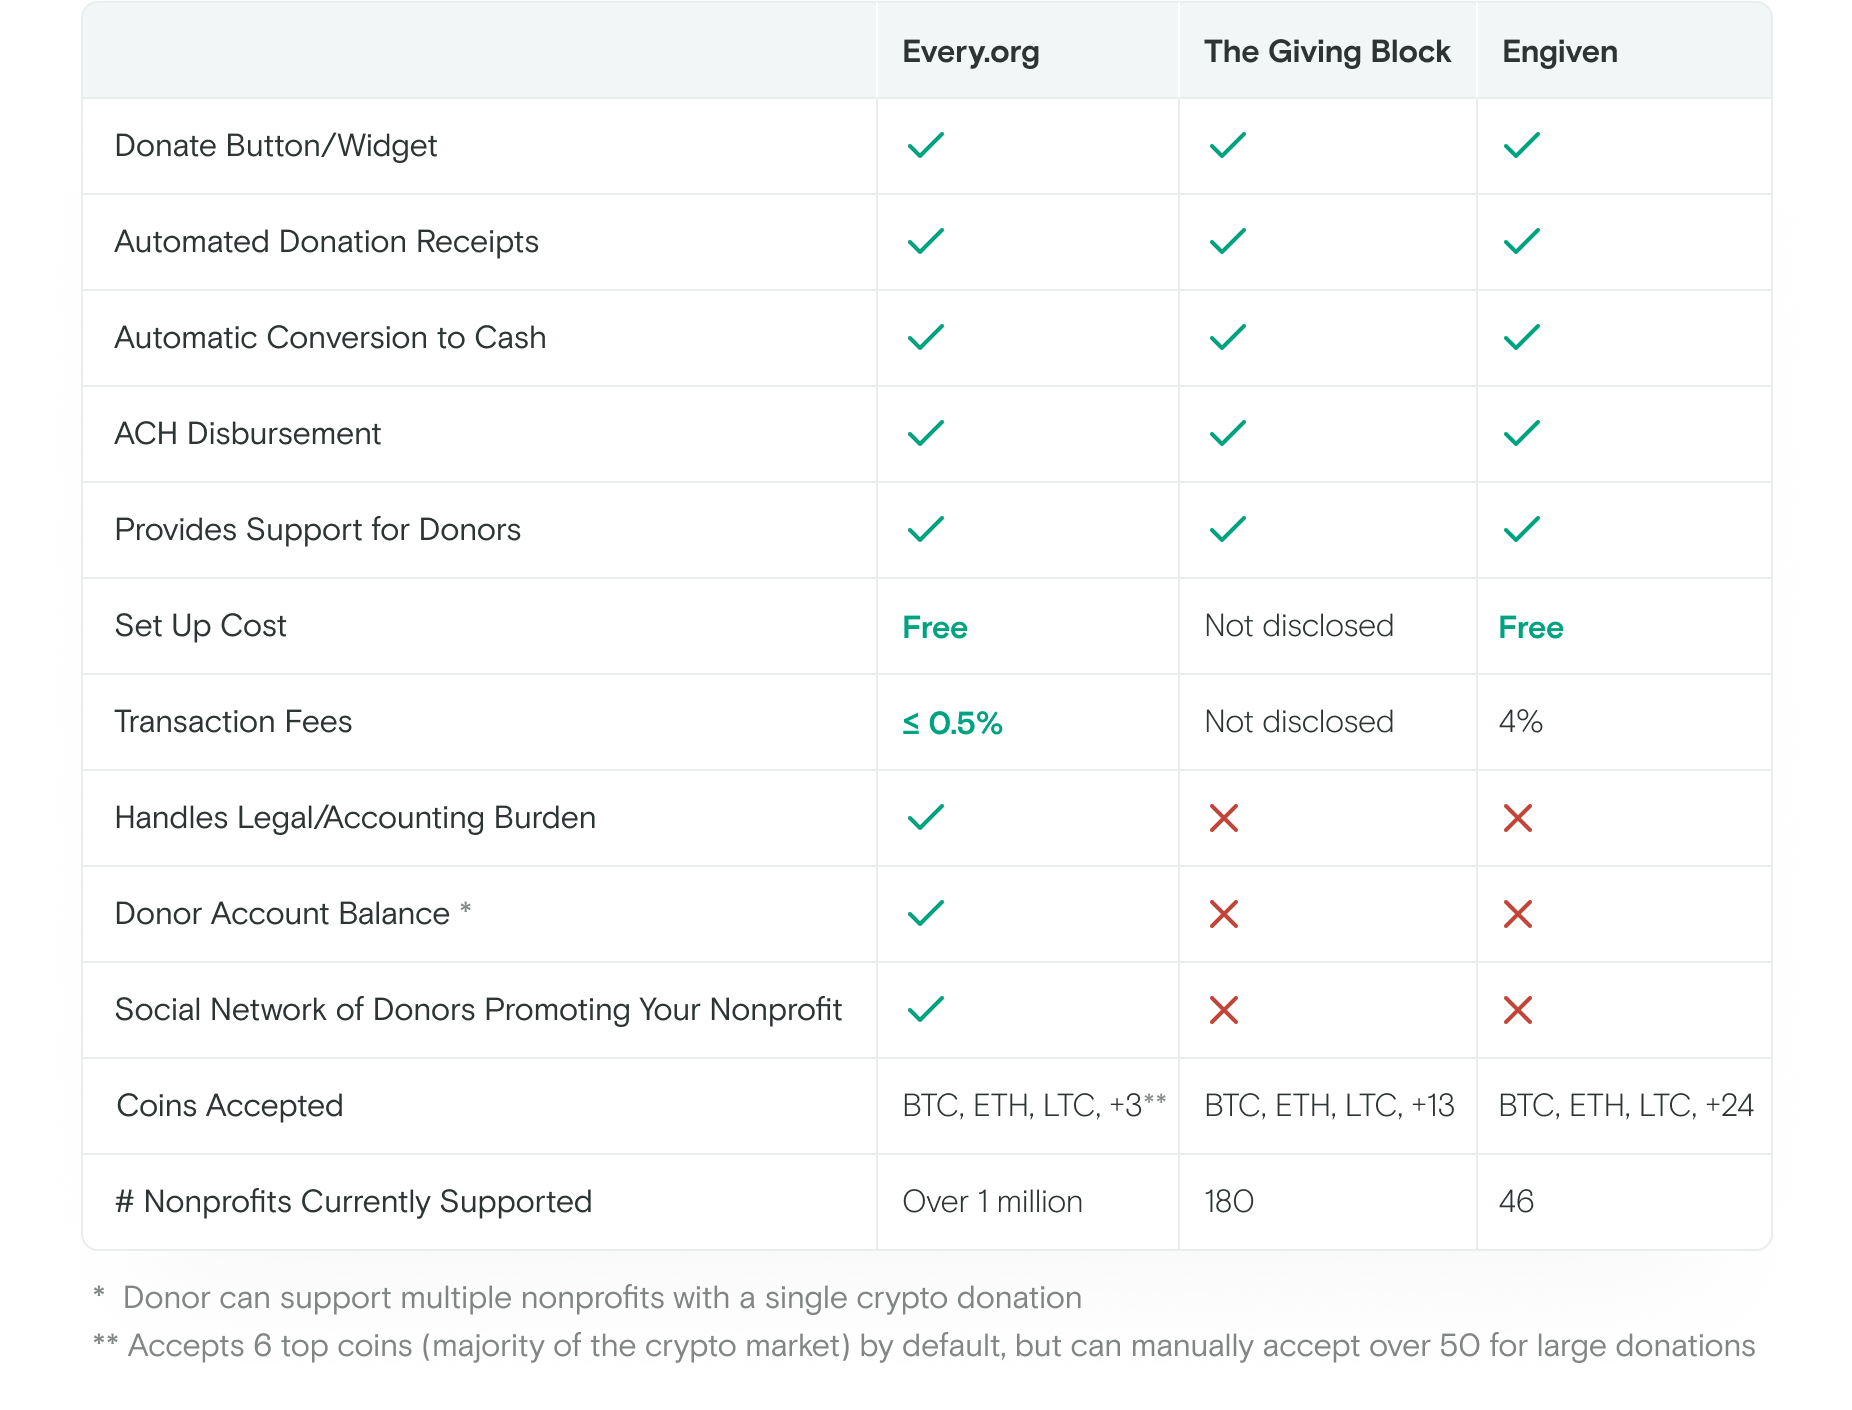 Comparison chart between Every.org, The Giving Block, and Engiven